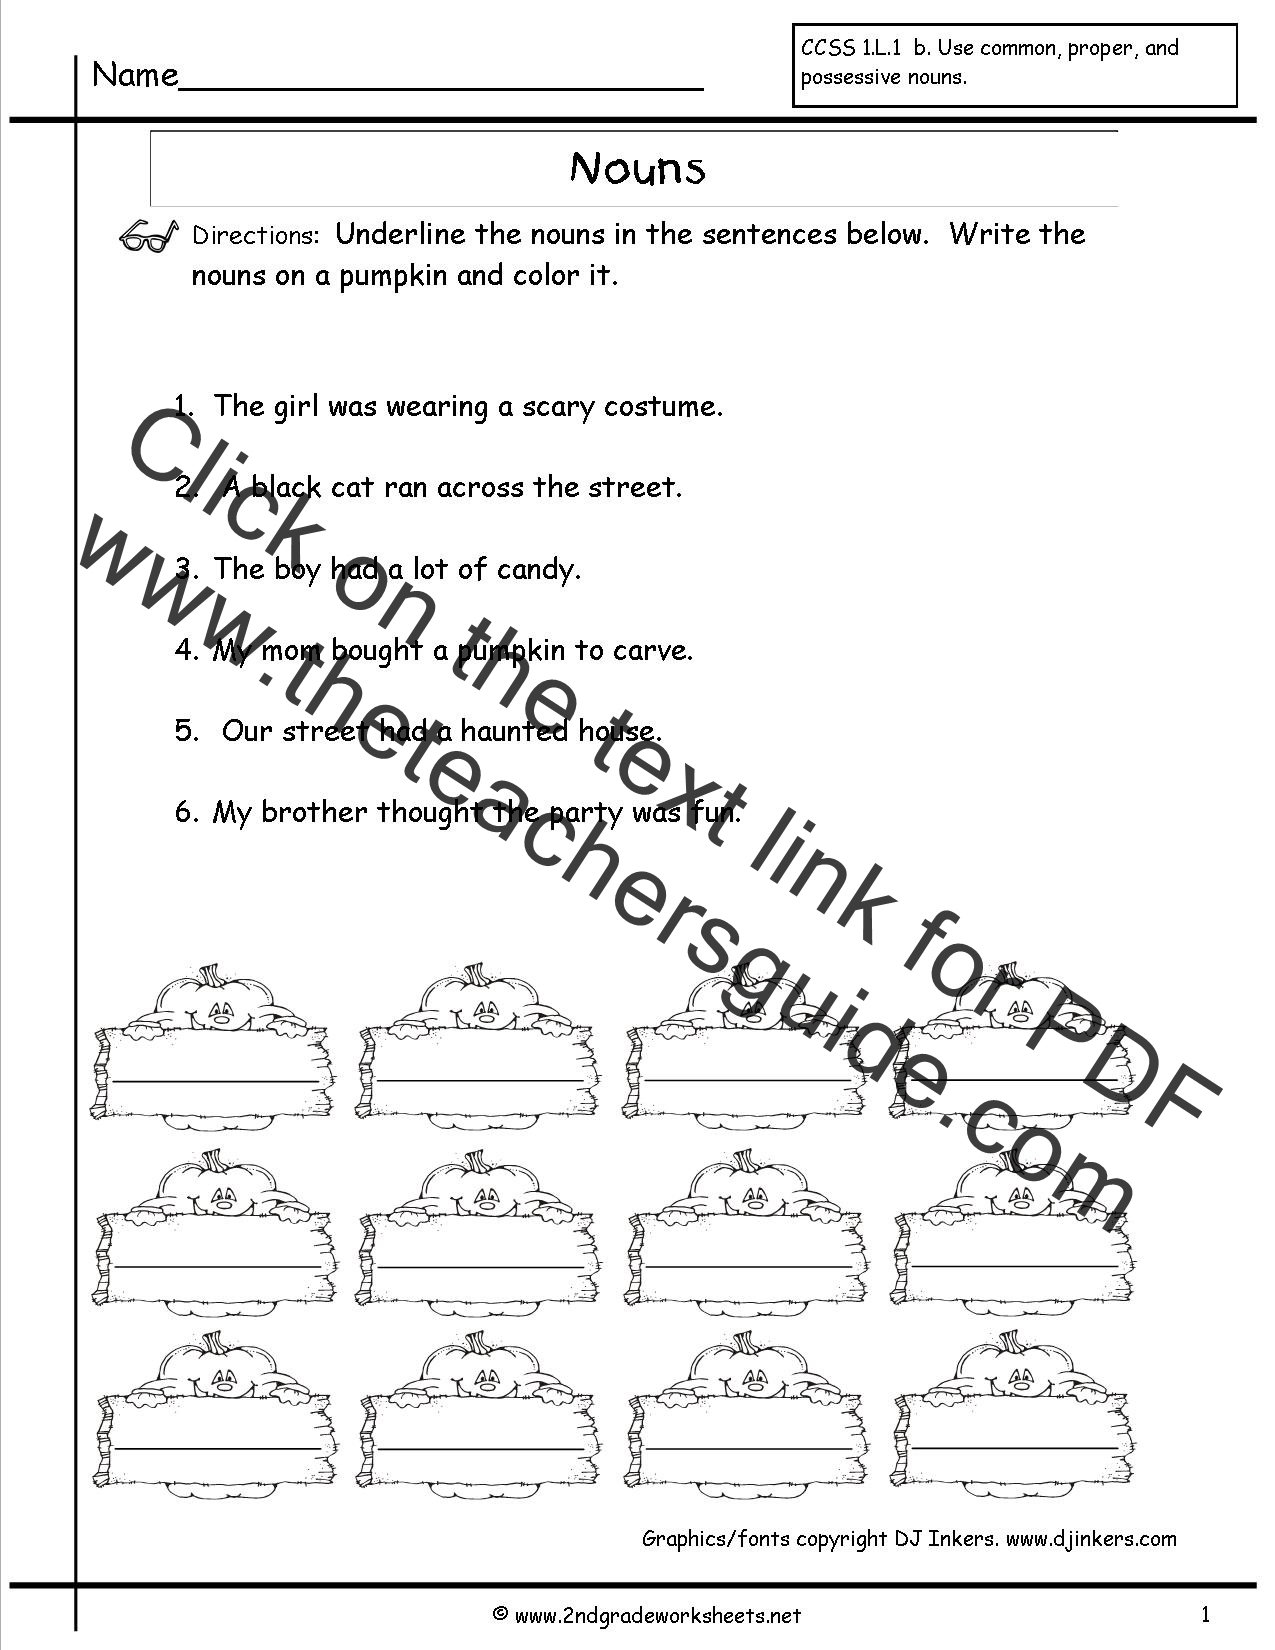 Worksheets Noun Worksheet nouns worksheets and printouts worksheet